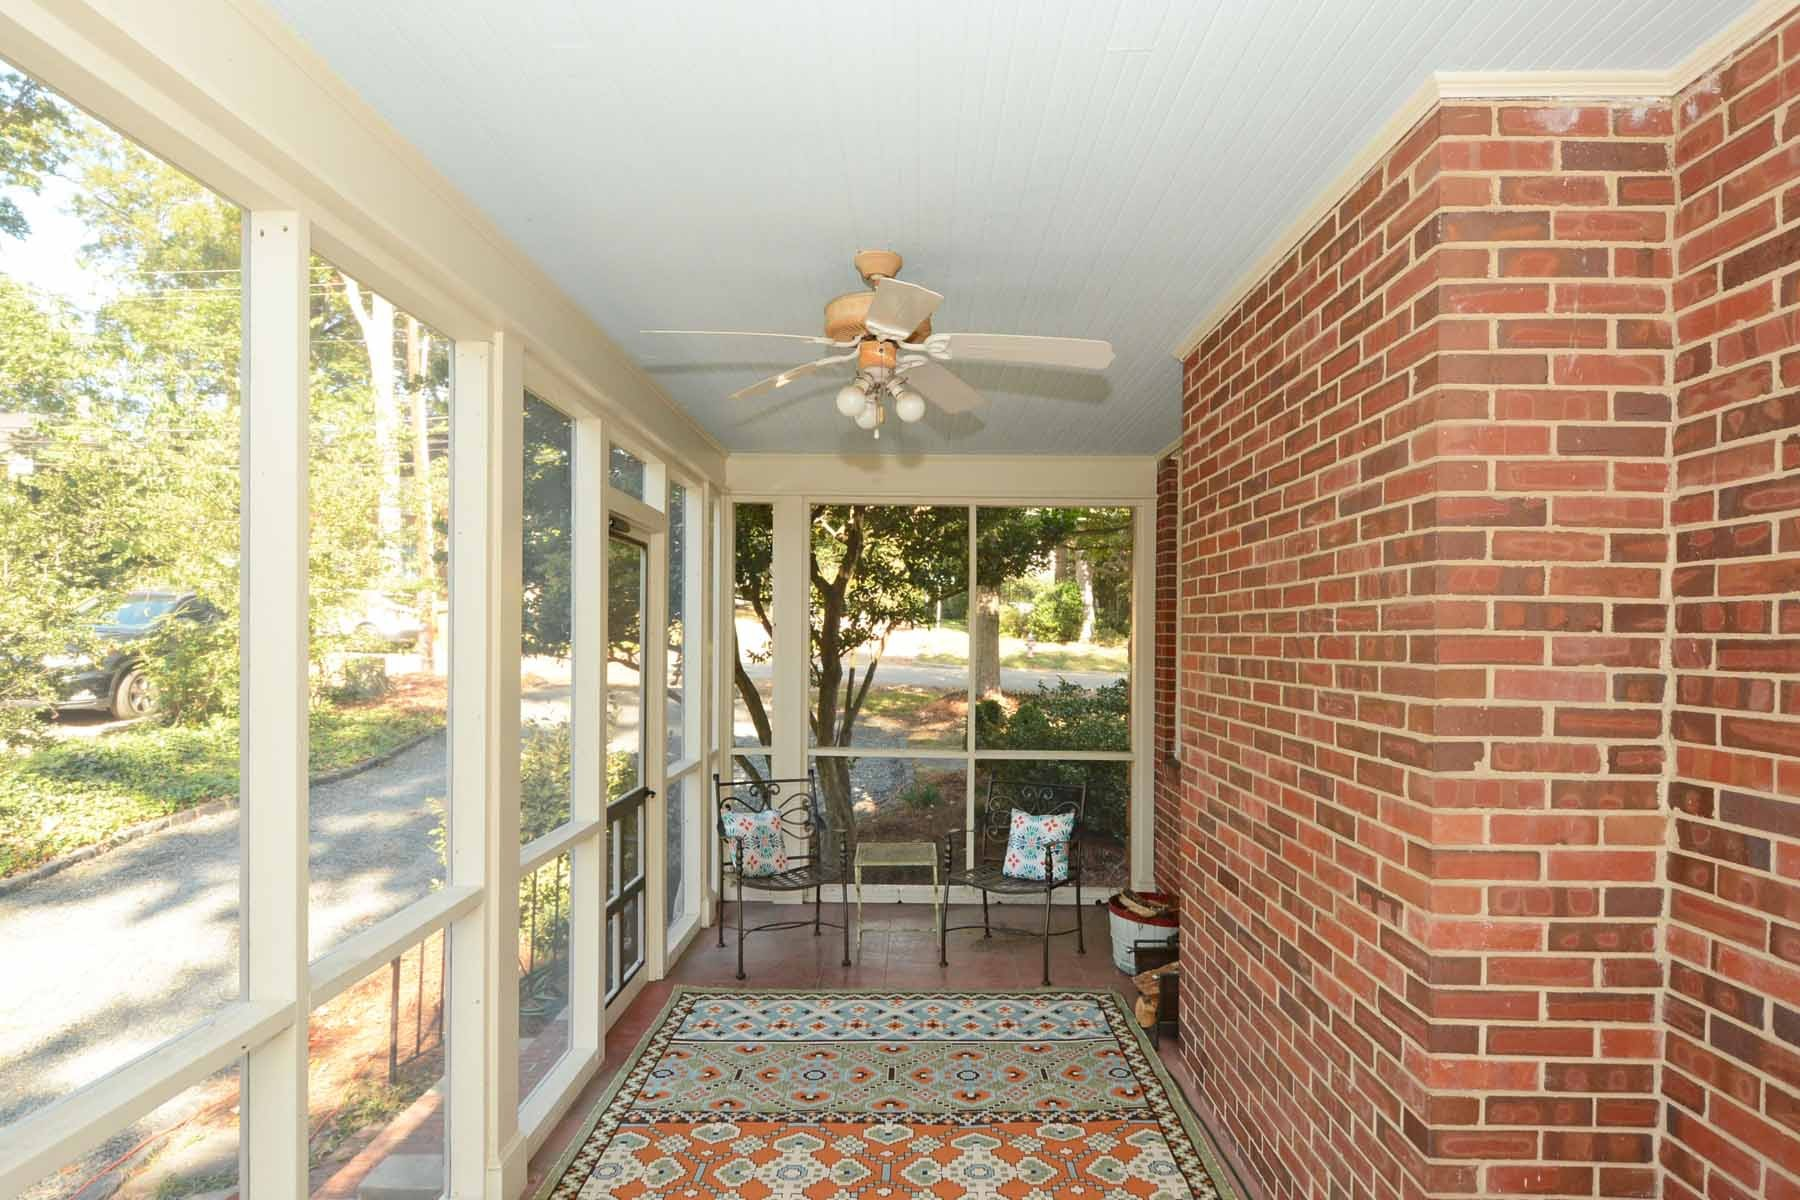 Additional photo for property listing at 2400 Anderson Drive  罗利, 北卡罗来纳州 27608 美国